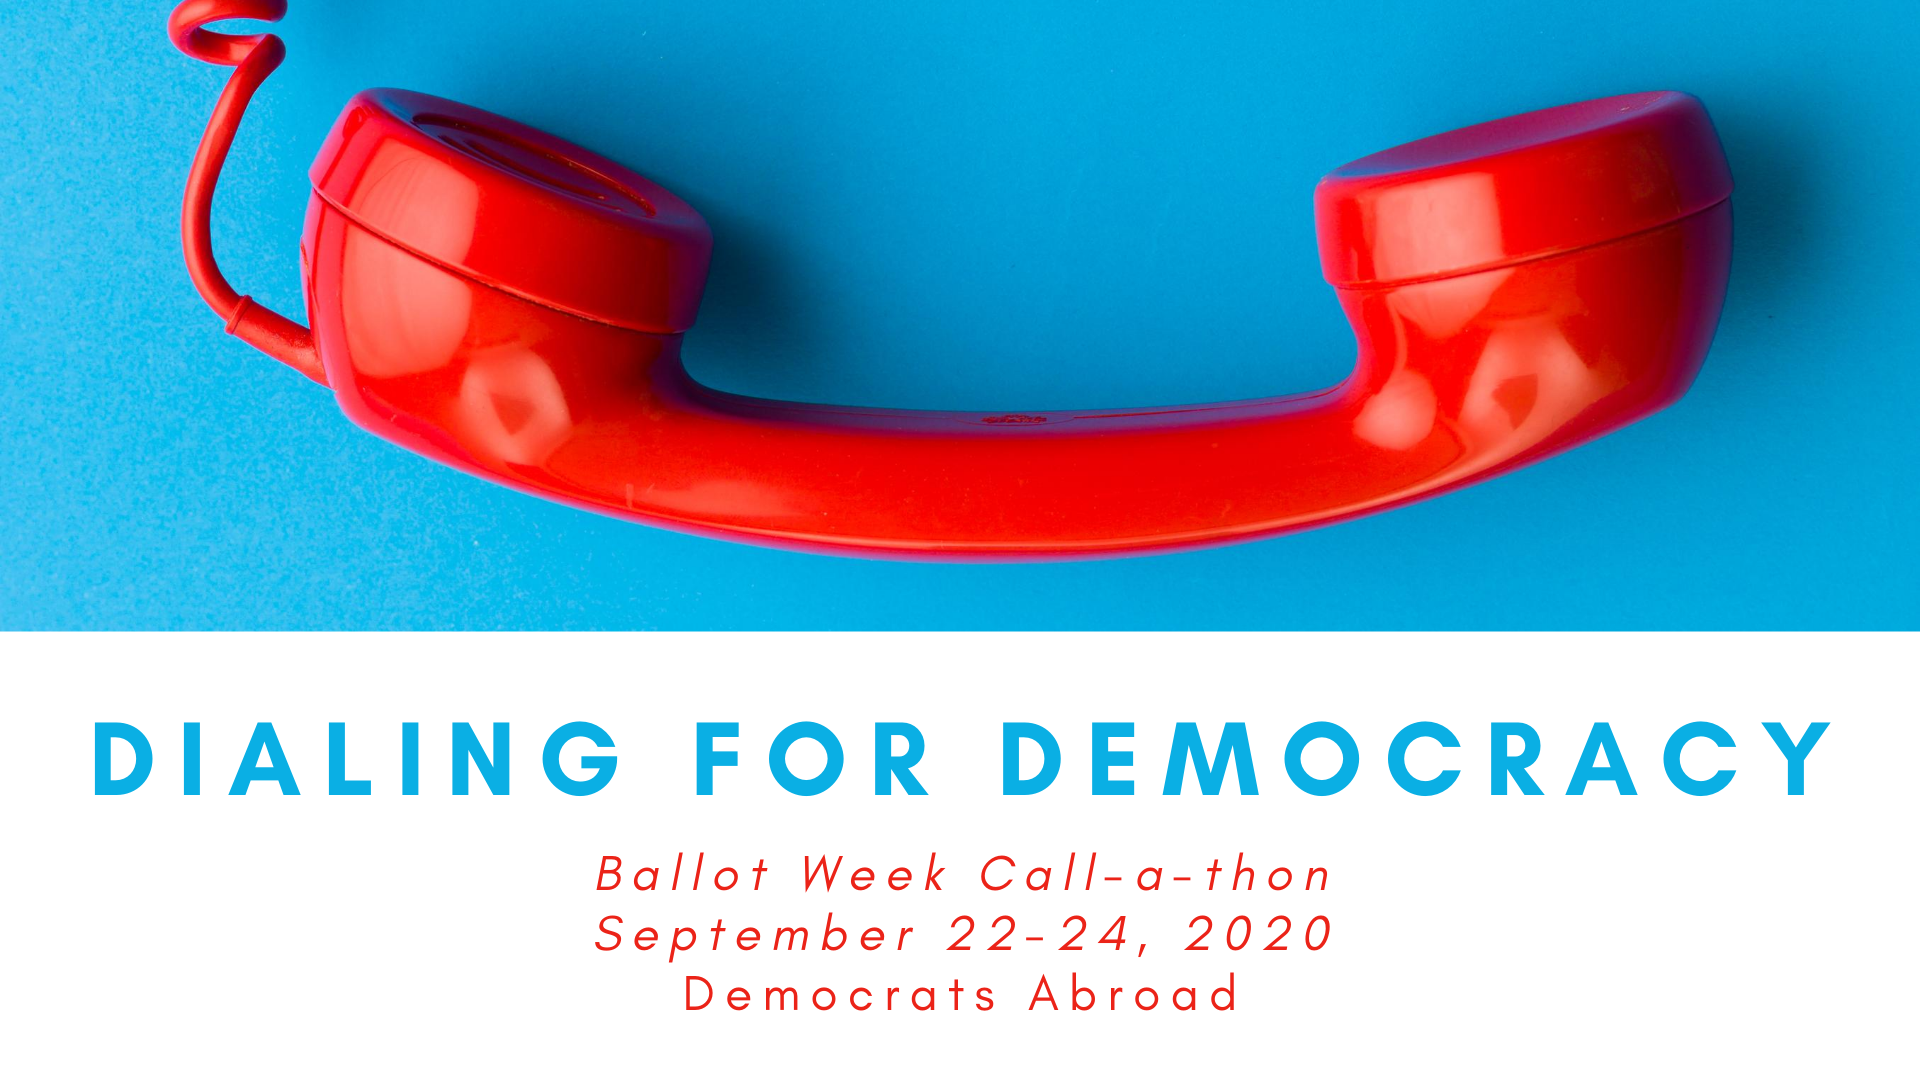 Dialing for Democracy